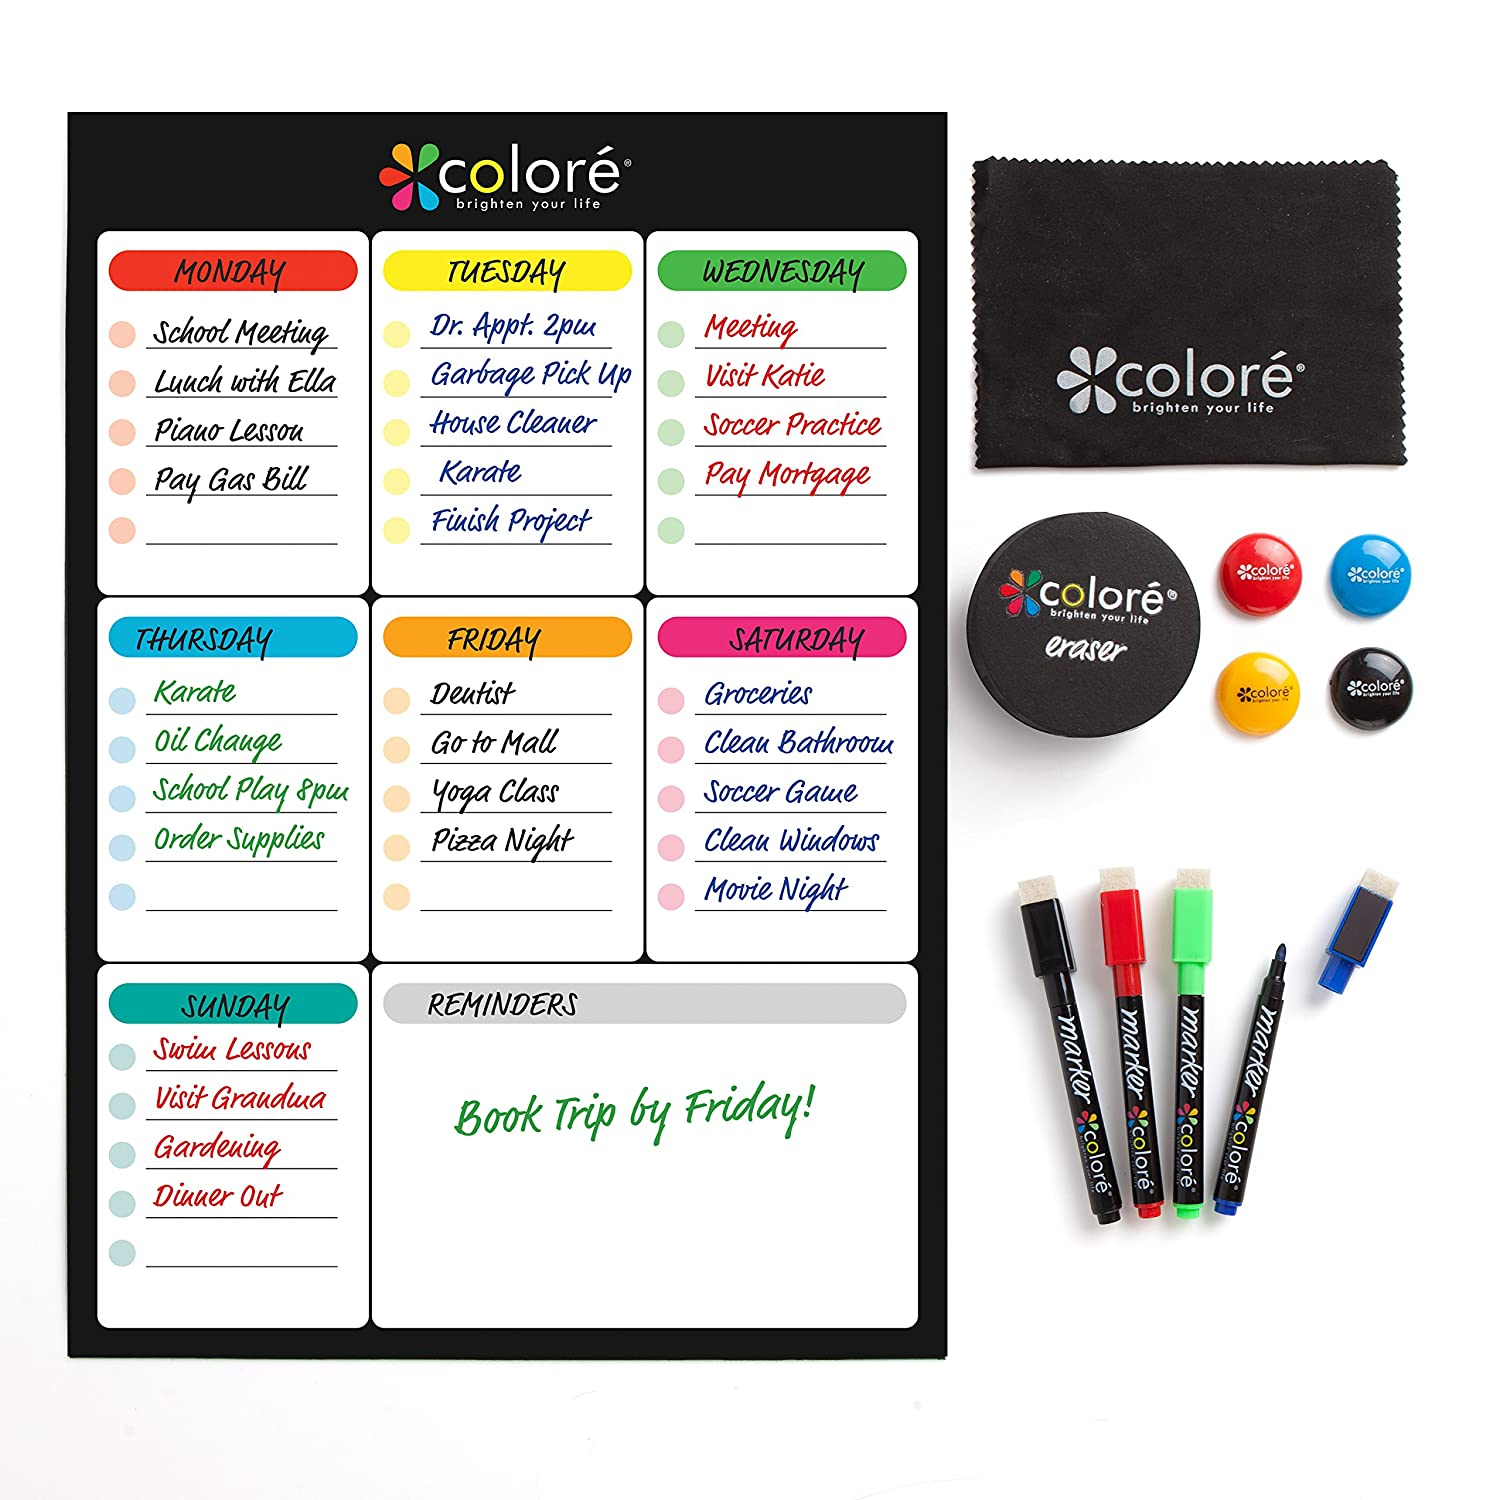 Colore SNOW-WHITE Large Dry Erase Magnetic Whiteboard for Fridge or Calendar - Portable & Stain-Proof White Board